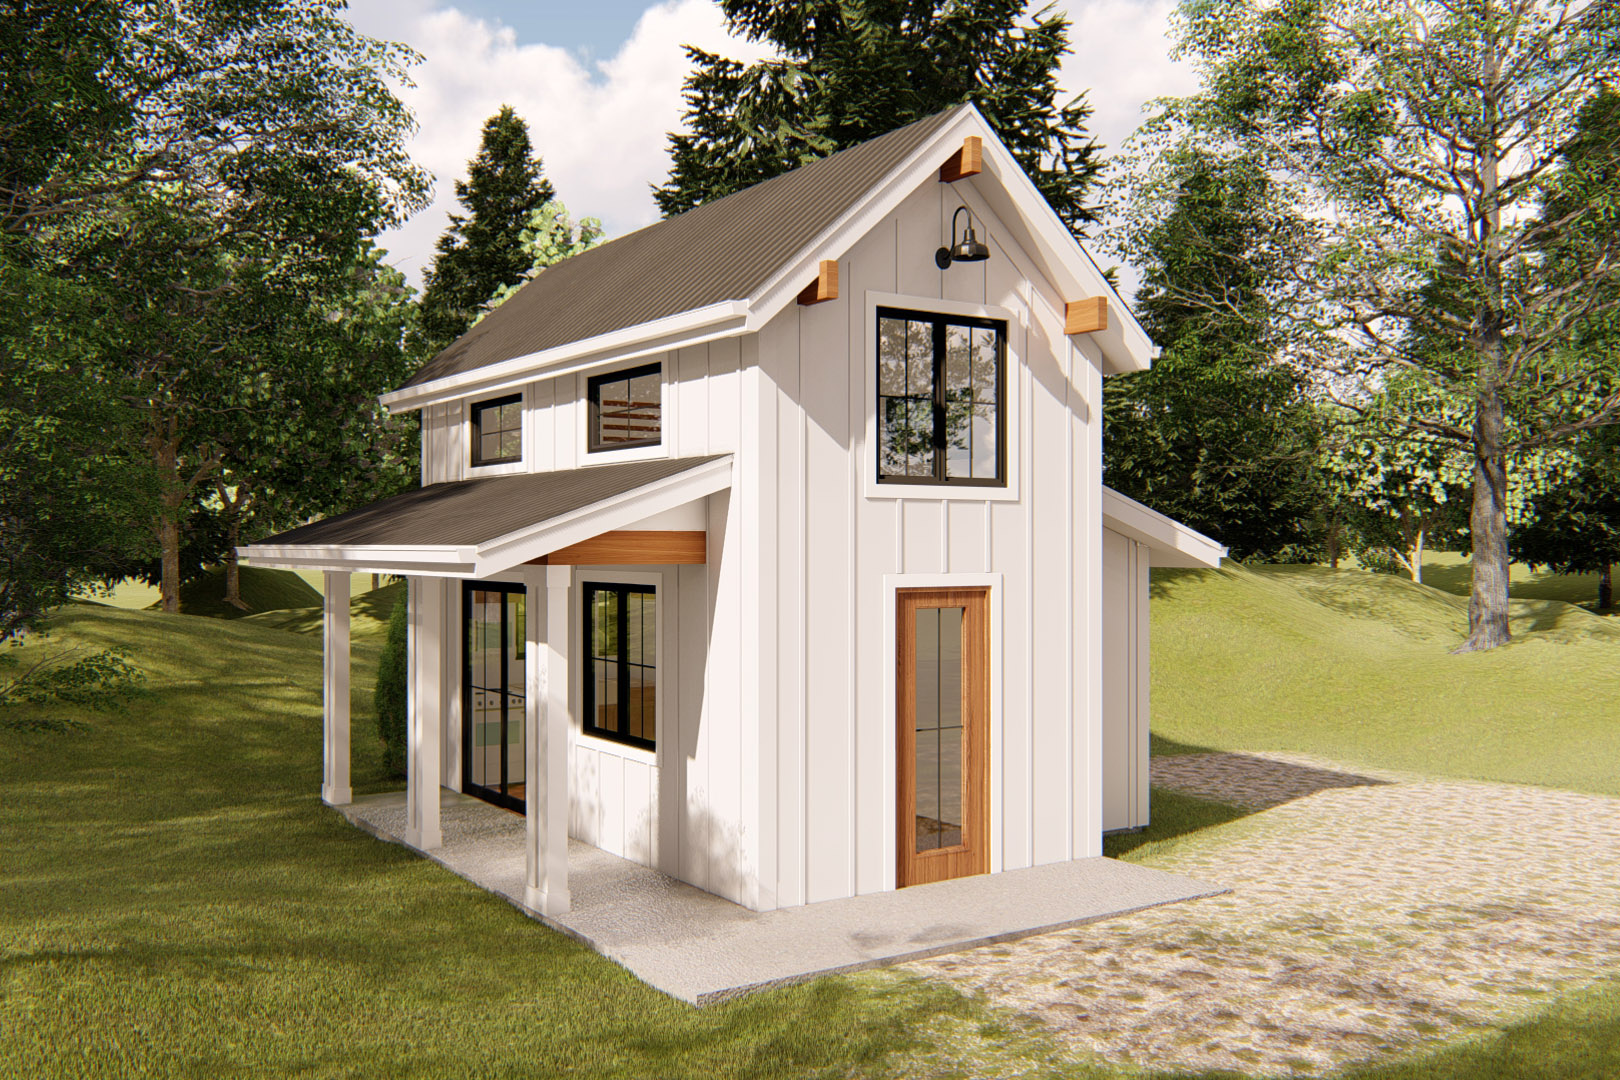 Teeny Tiny House Plan with Bedroom Loft - 62571DJ ...